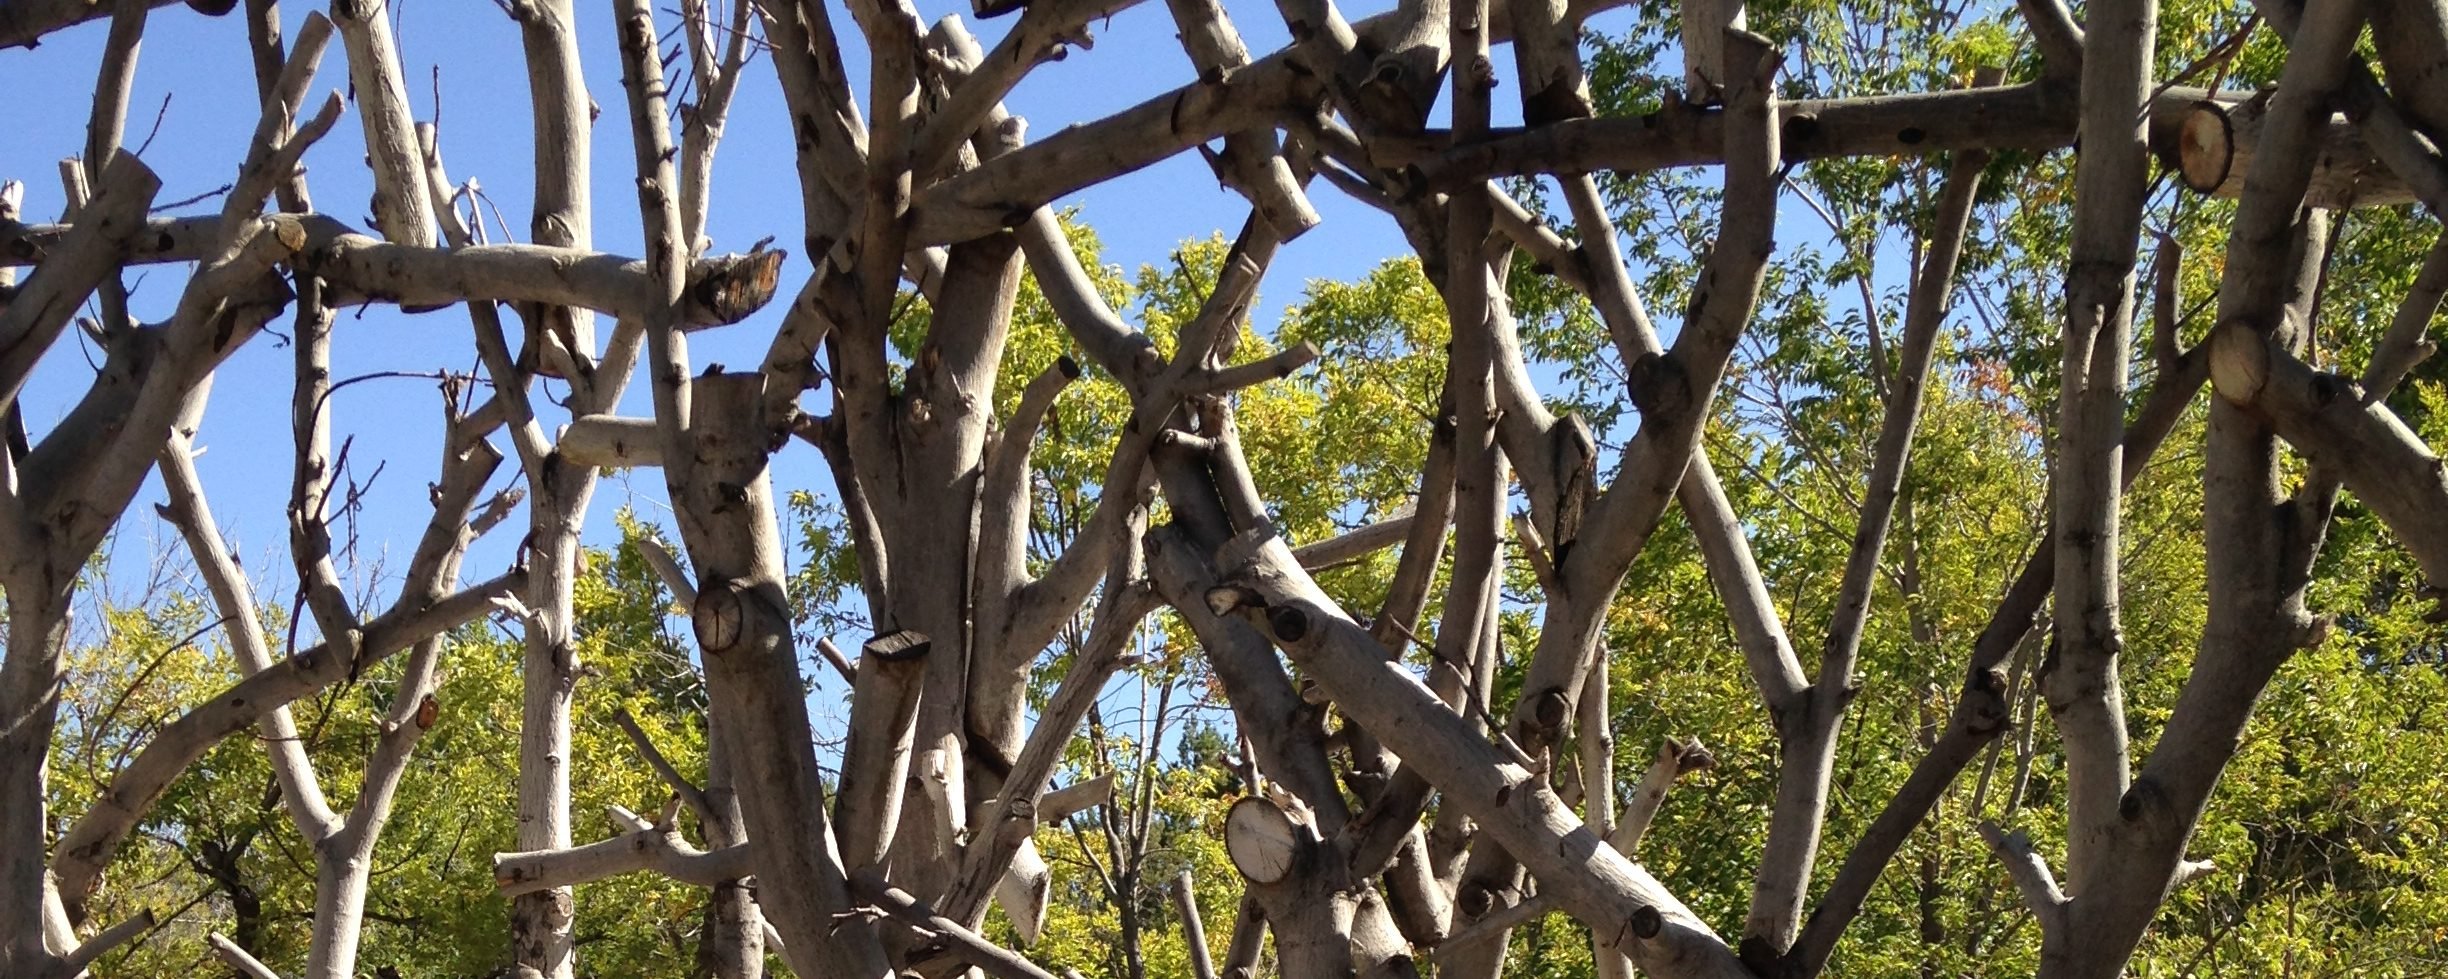 photograph of stressful tangled branches